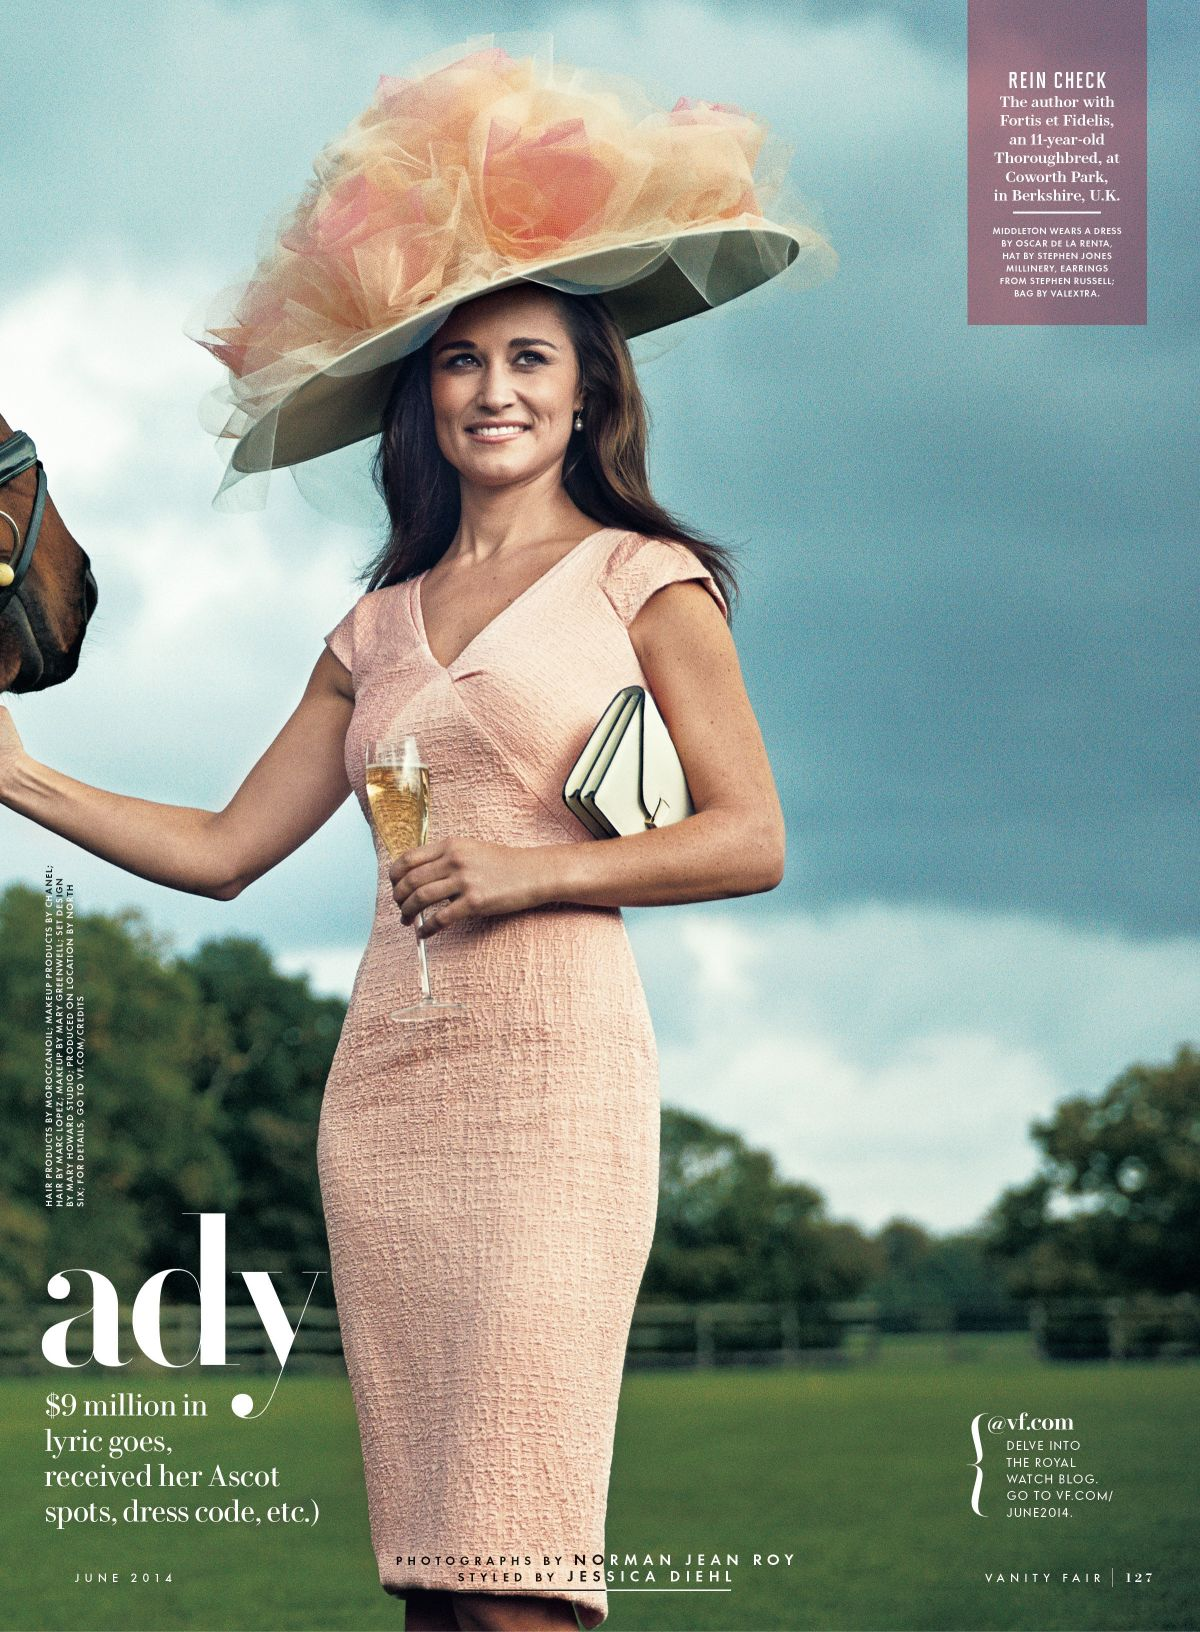 PIPPA MIDDLETON in Vanity Fair magazine, June 2014 Issue